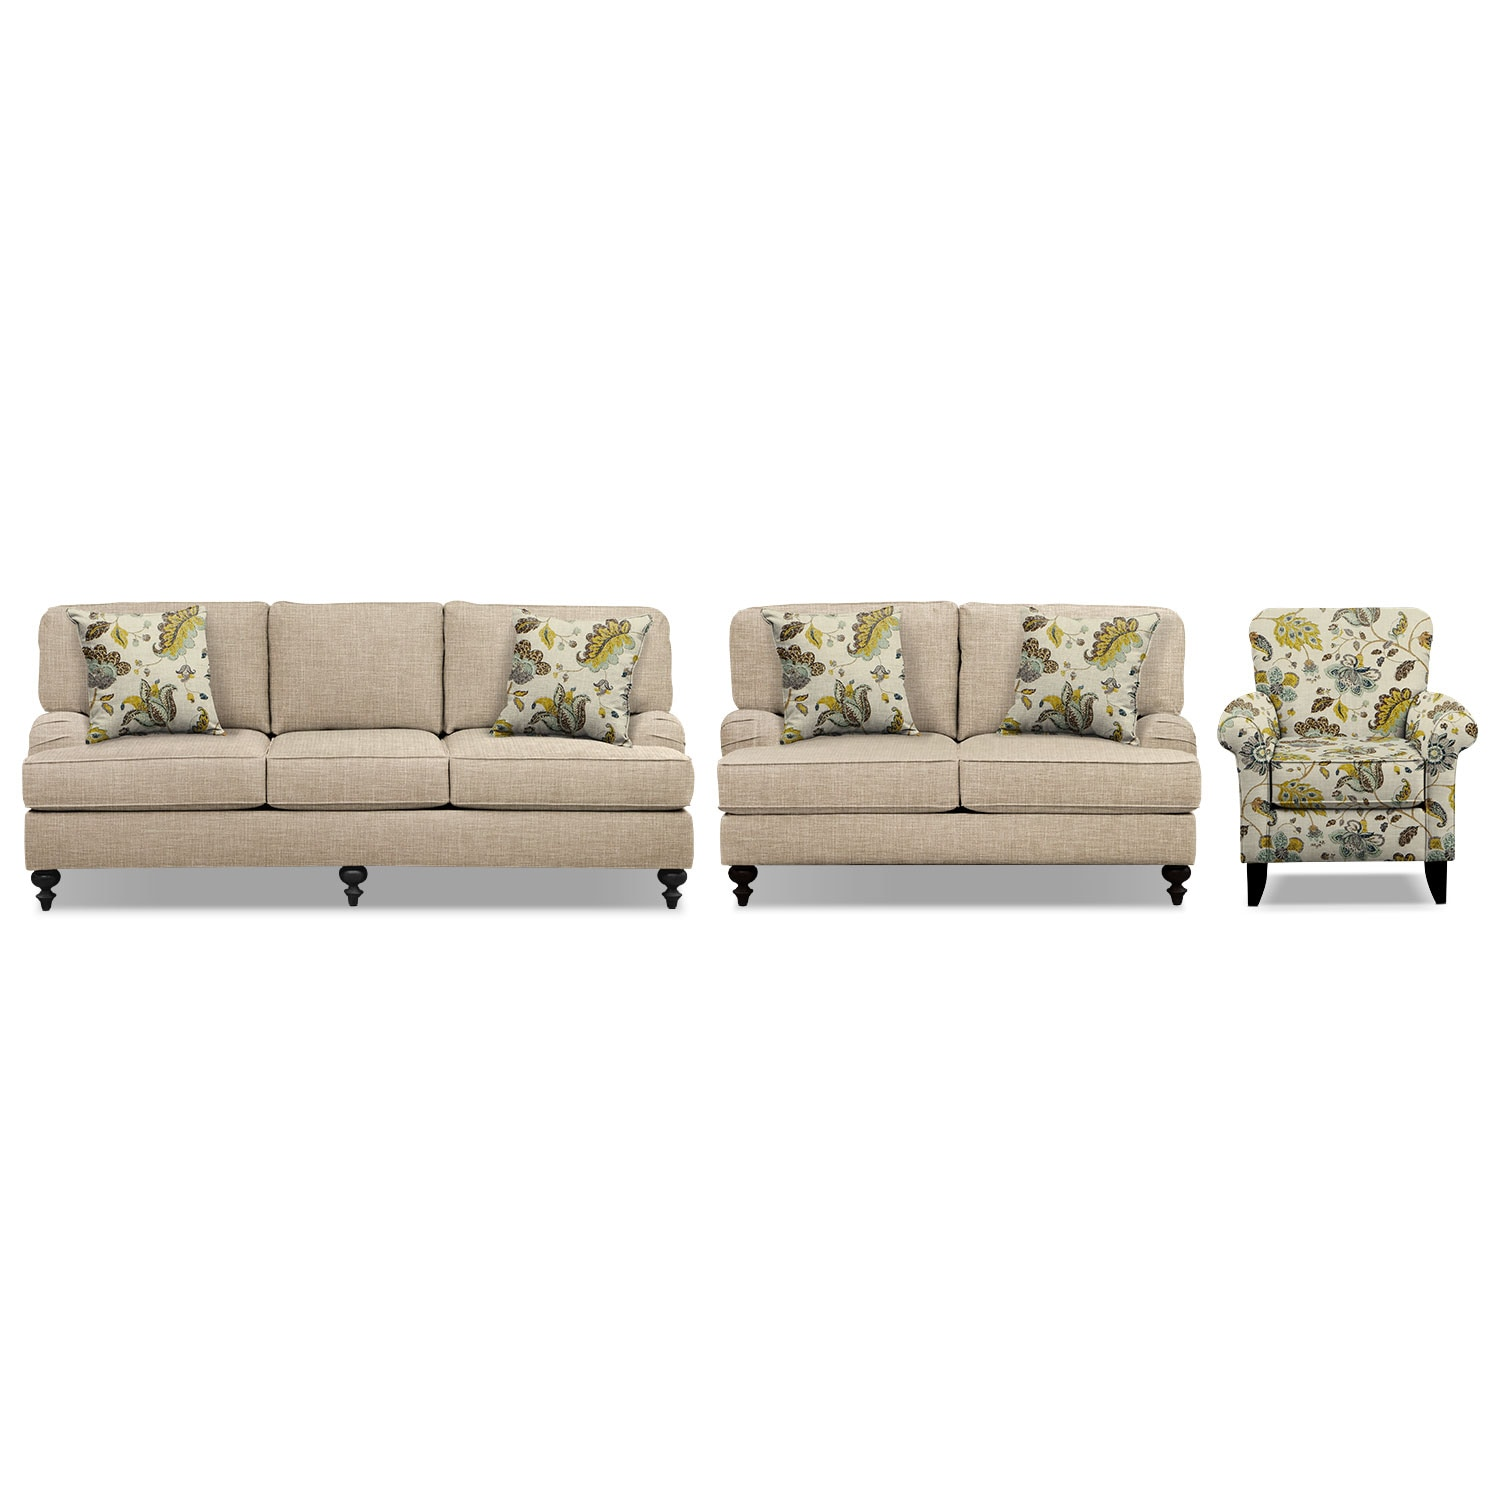 "Living Room Furniture - Avery Taupe 86"" Innerspring Sleeper Sofa, 62"" Sofa and Accent Chair Set"